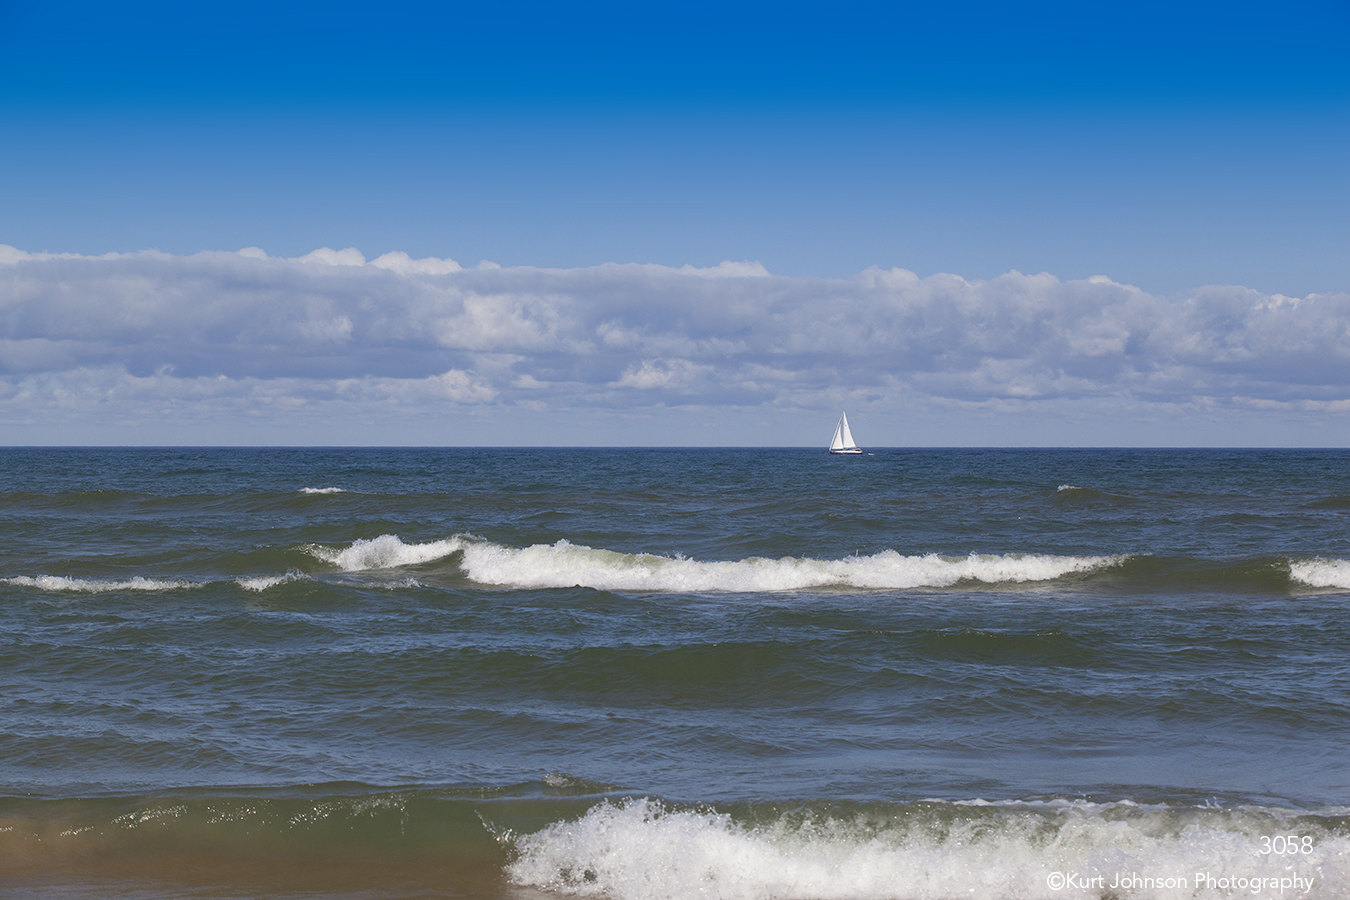 waterscape ocean water waves sailboat clouds sky blue